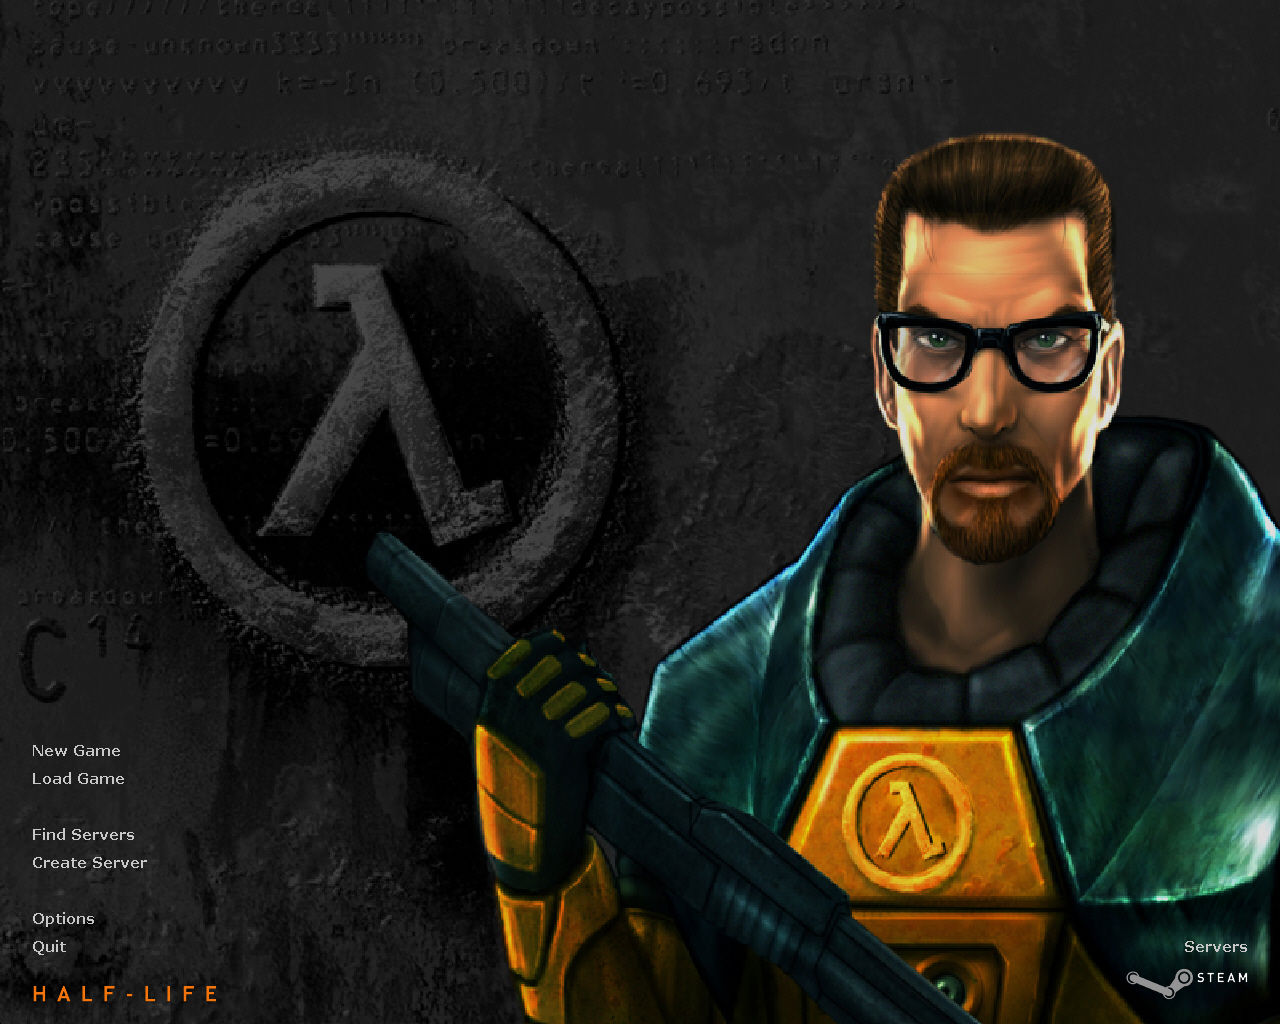 Half-Life Windows Title screen and main menu (Steam release)